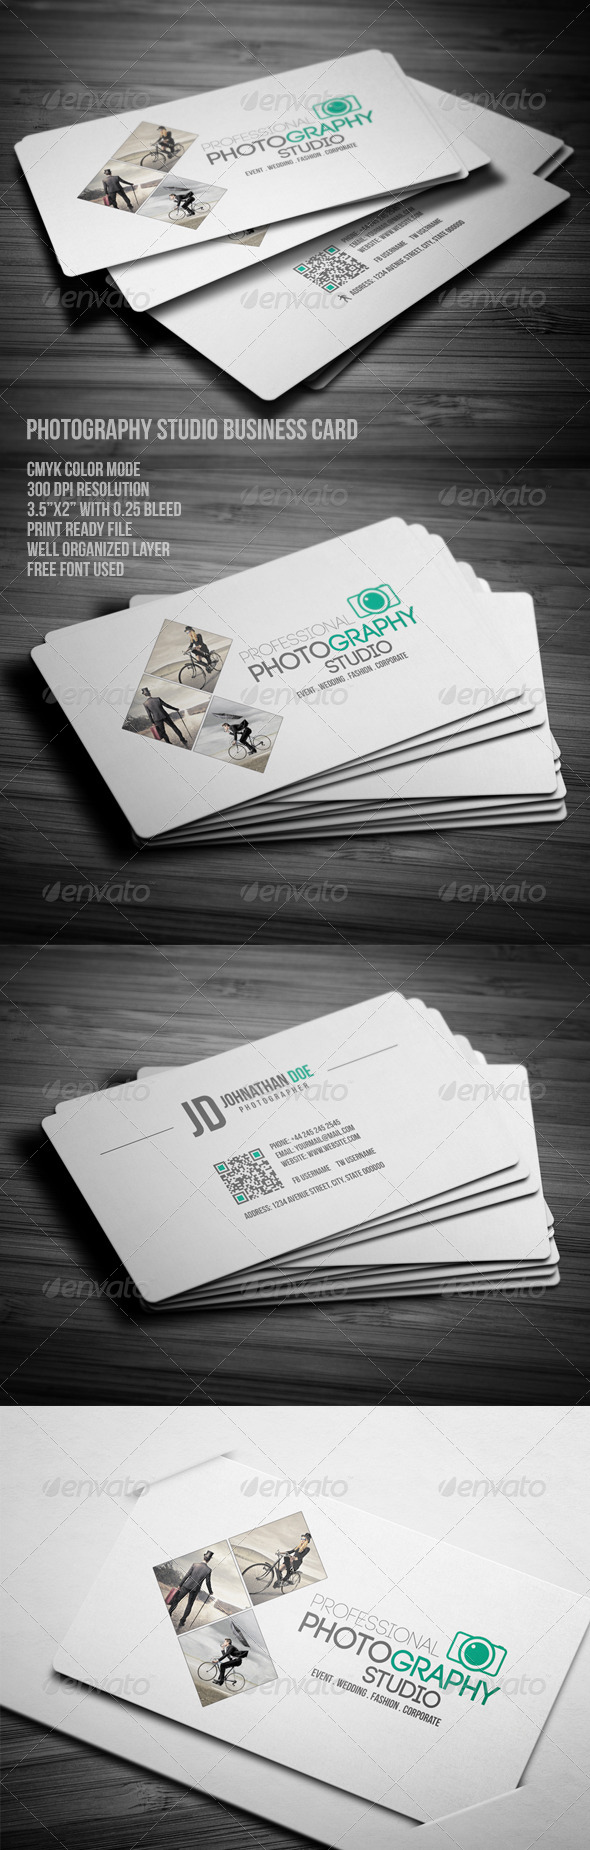 GraphicRiver Photography Studio Business Card 7910154